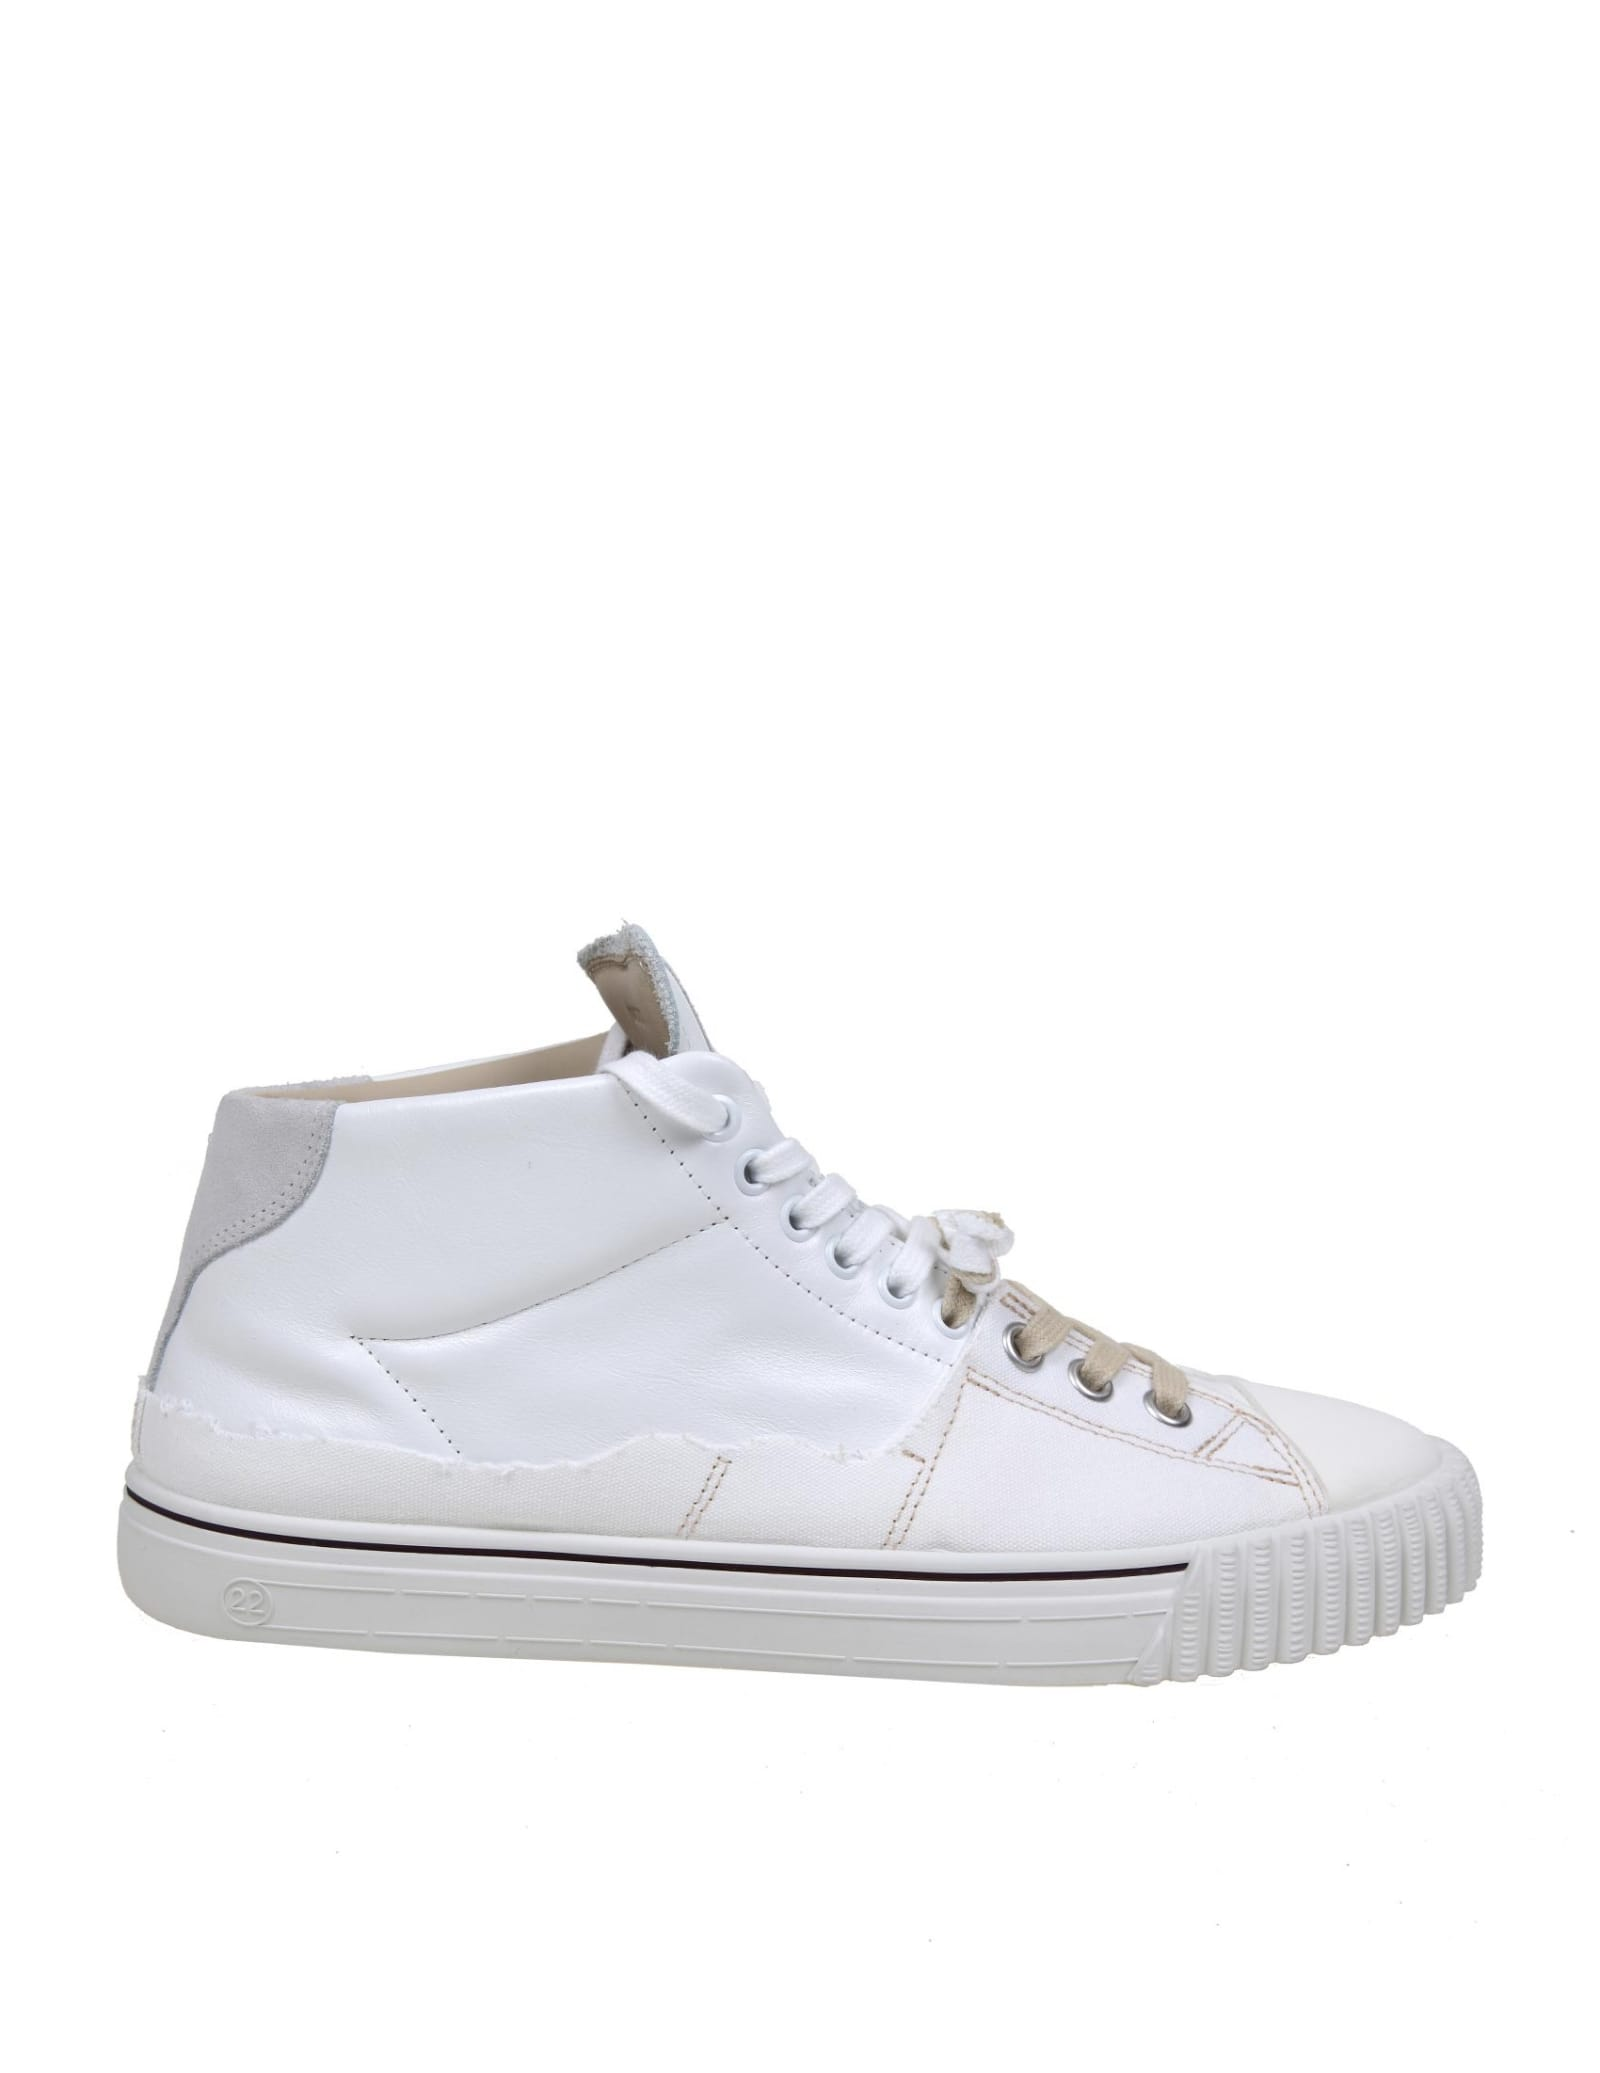 Maison Margiela EVOLUTION SNEAKERS IN LEATHER AND CANVAS